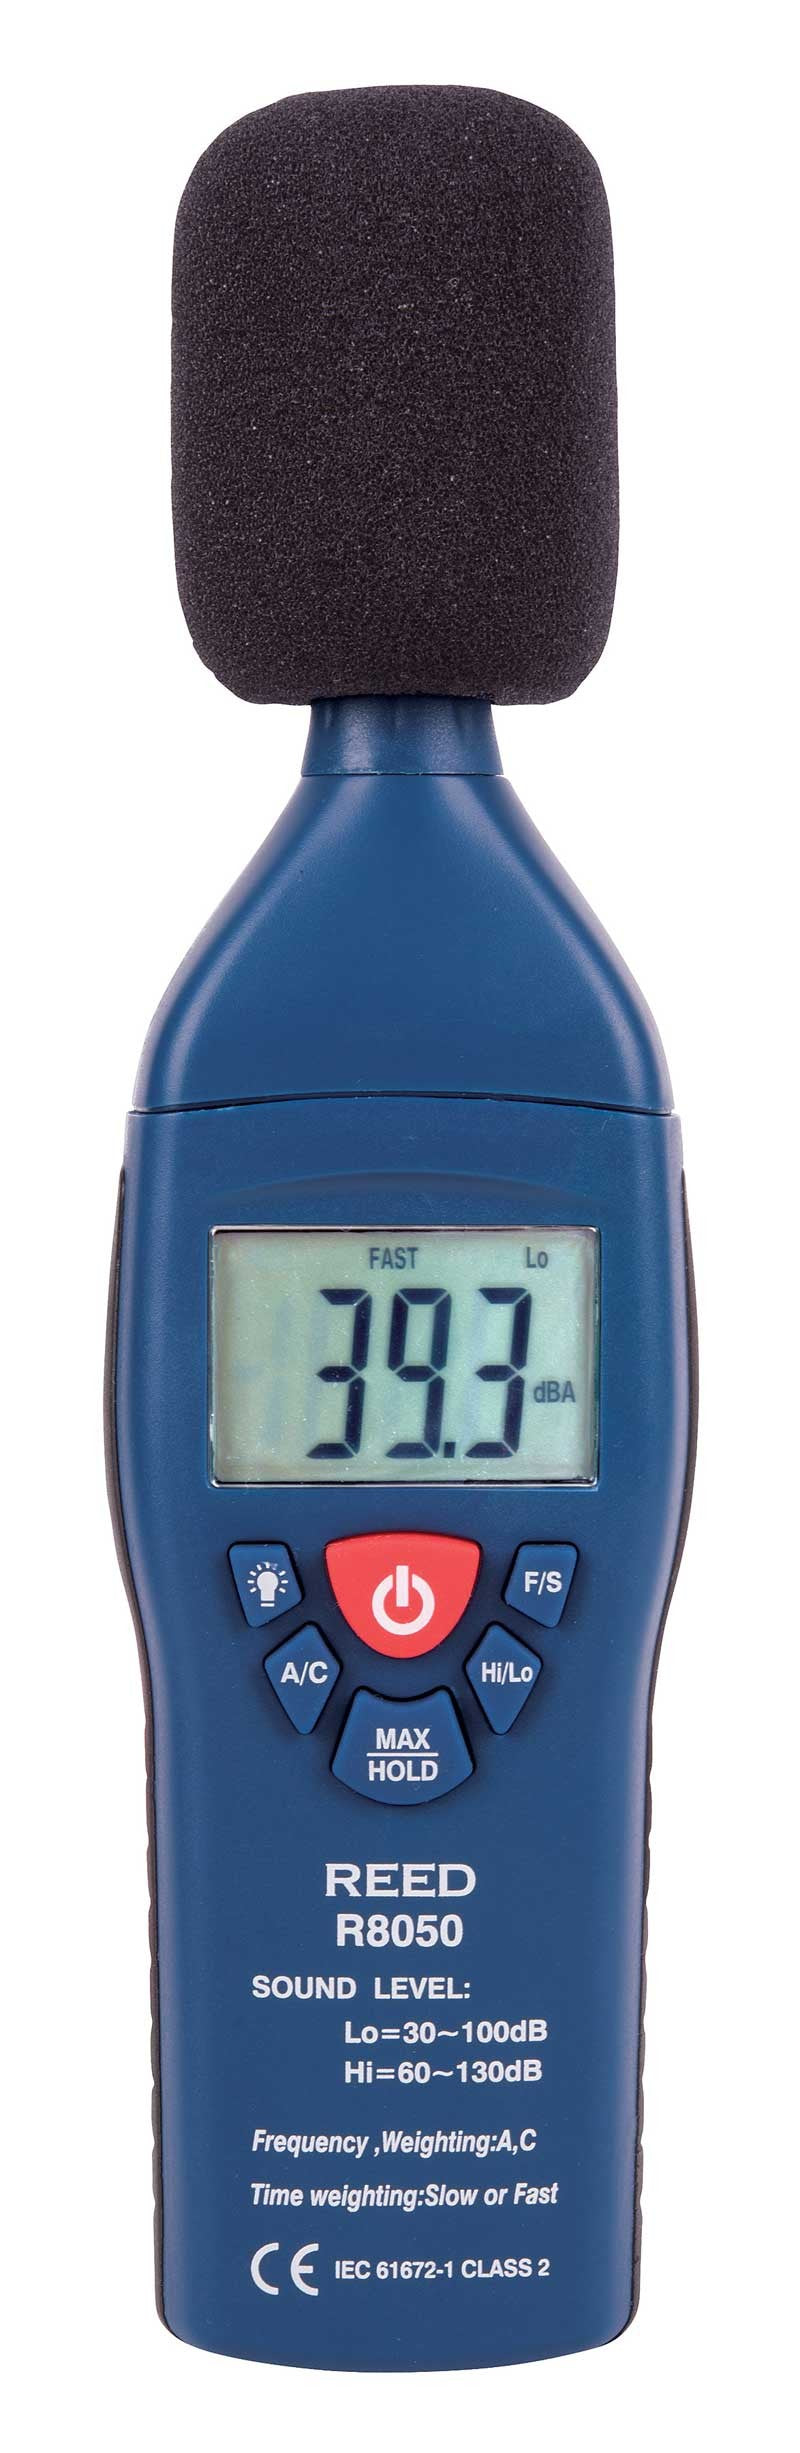 REED R8050 Dual Range Sound Level Meter